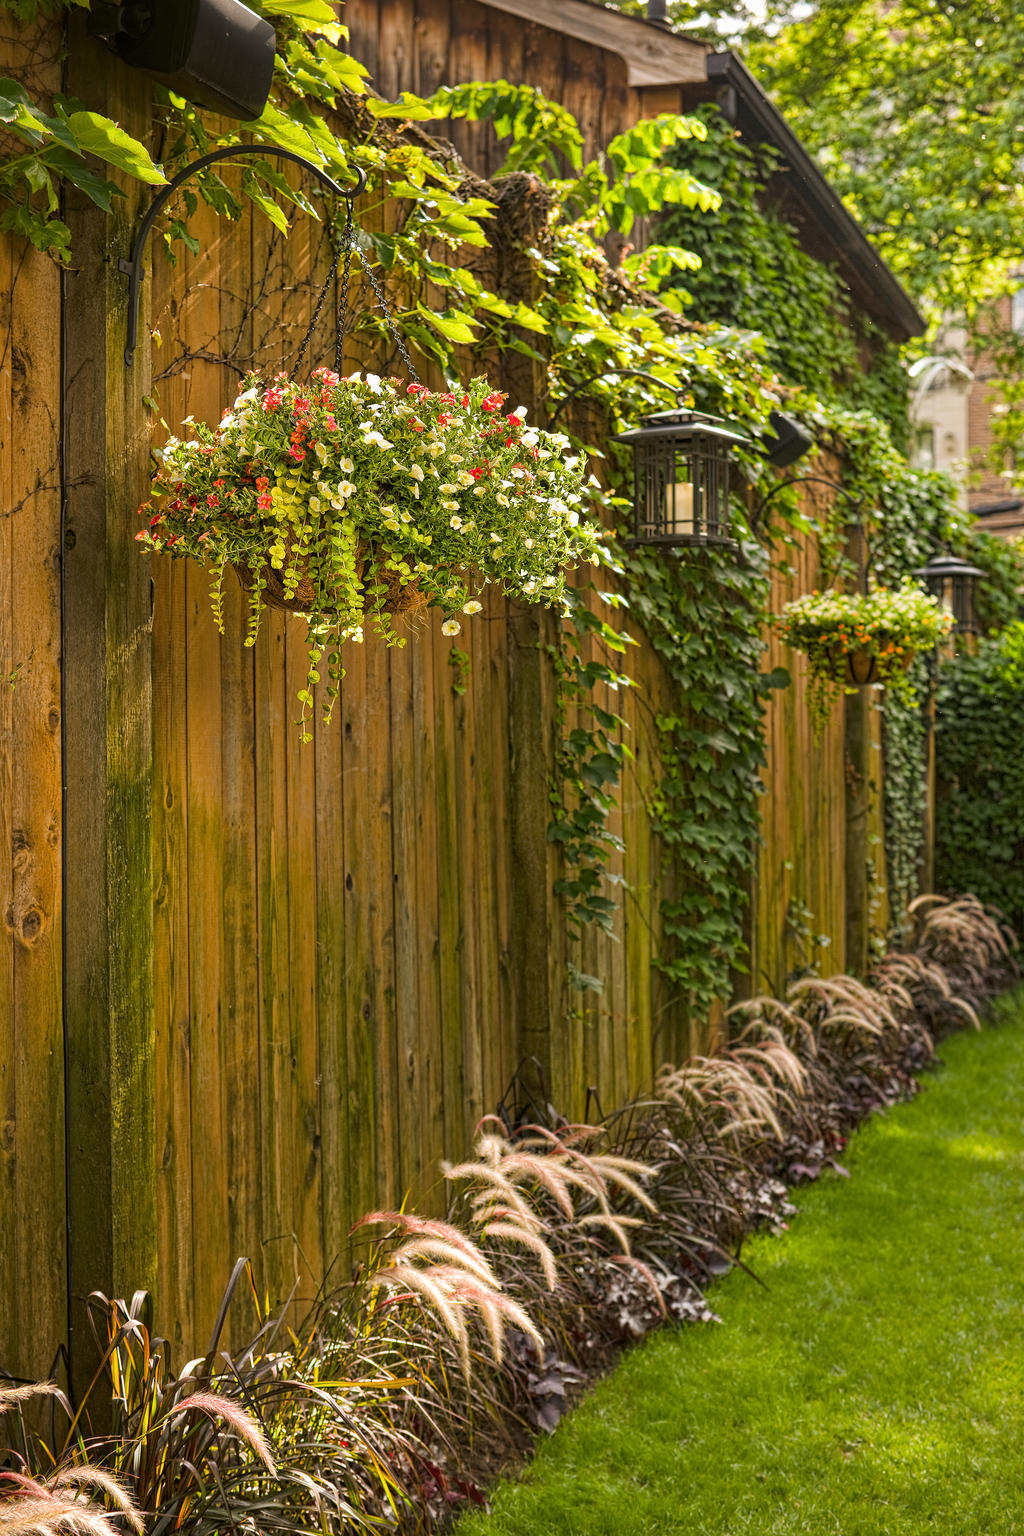 Dashing Temperatures Are You May Only Haveto Hope Here Are A Few More Tips On Watering Hanging Early Spring Whenyour Plants Are Smaller Hanging Baskets Proven Winners garden Fence Hanging Garden